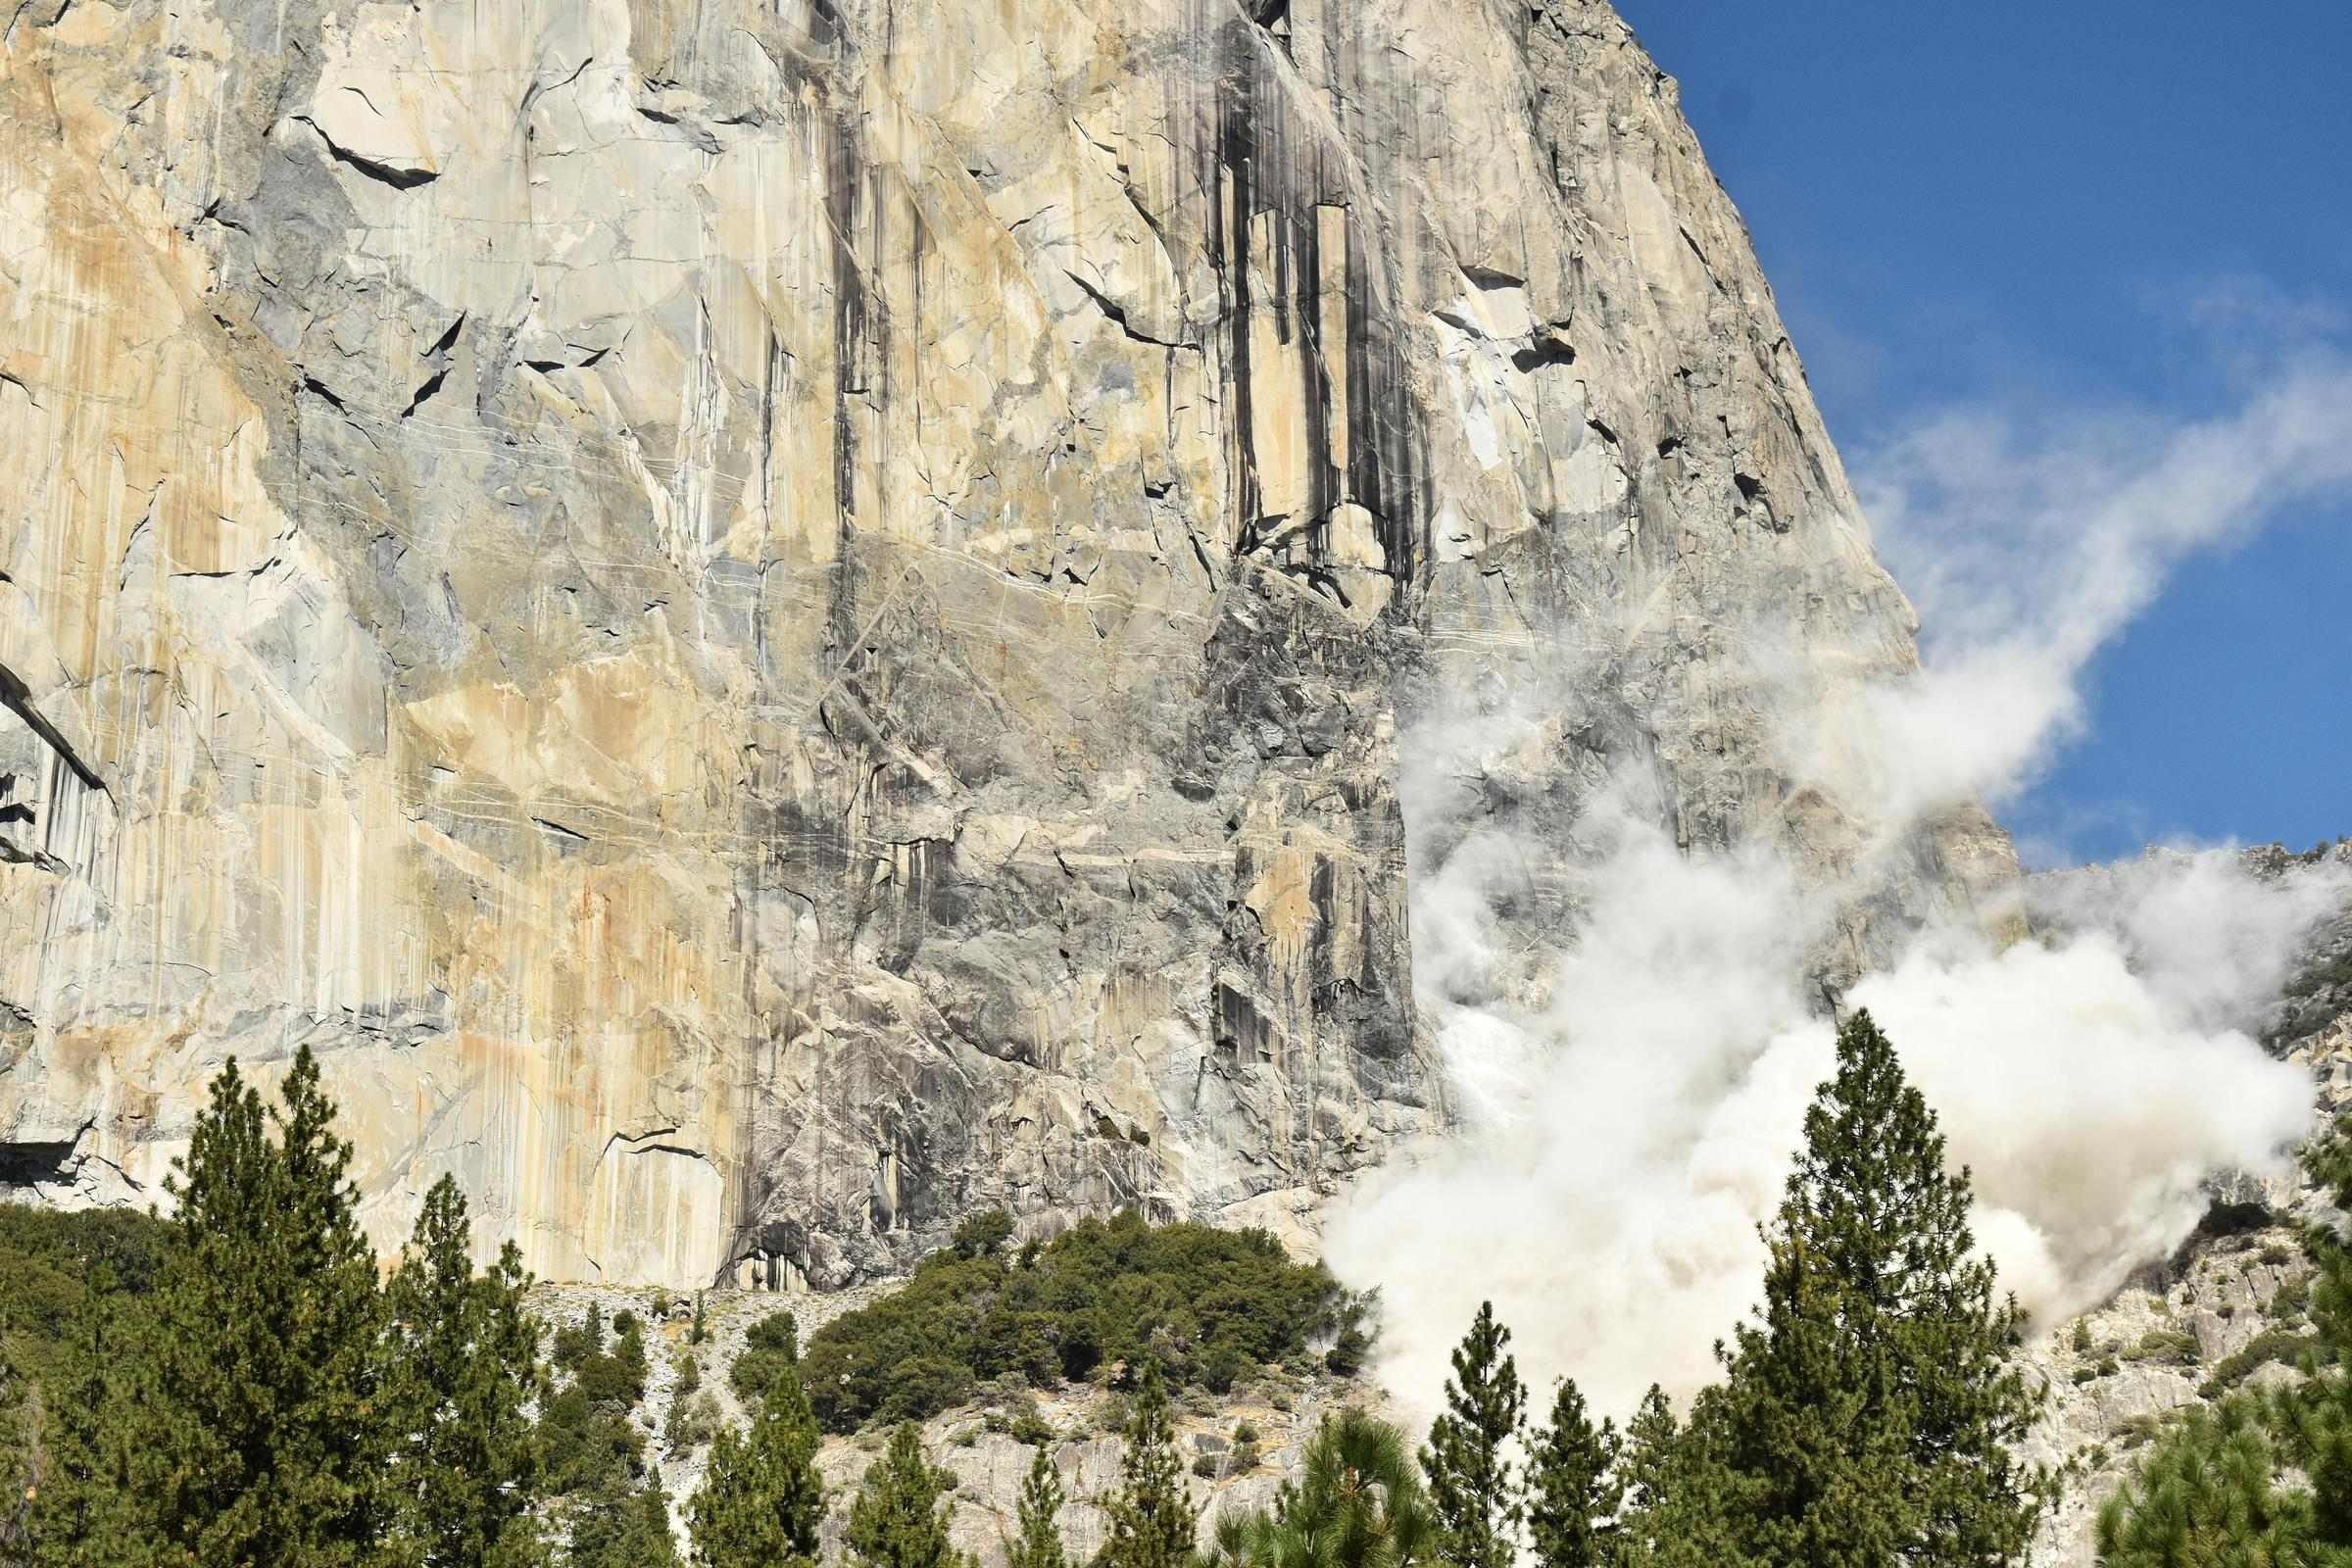 1 dead, 1 hurt in rockfall at Yosemite National Park's El Capitan